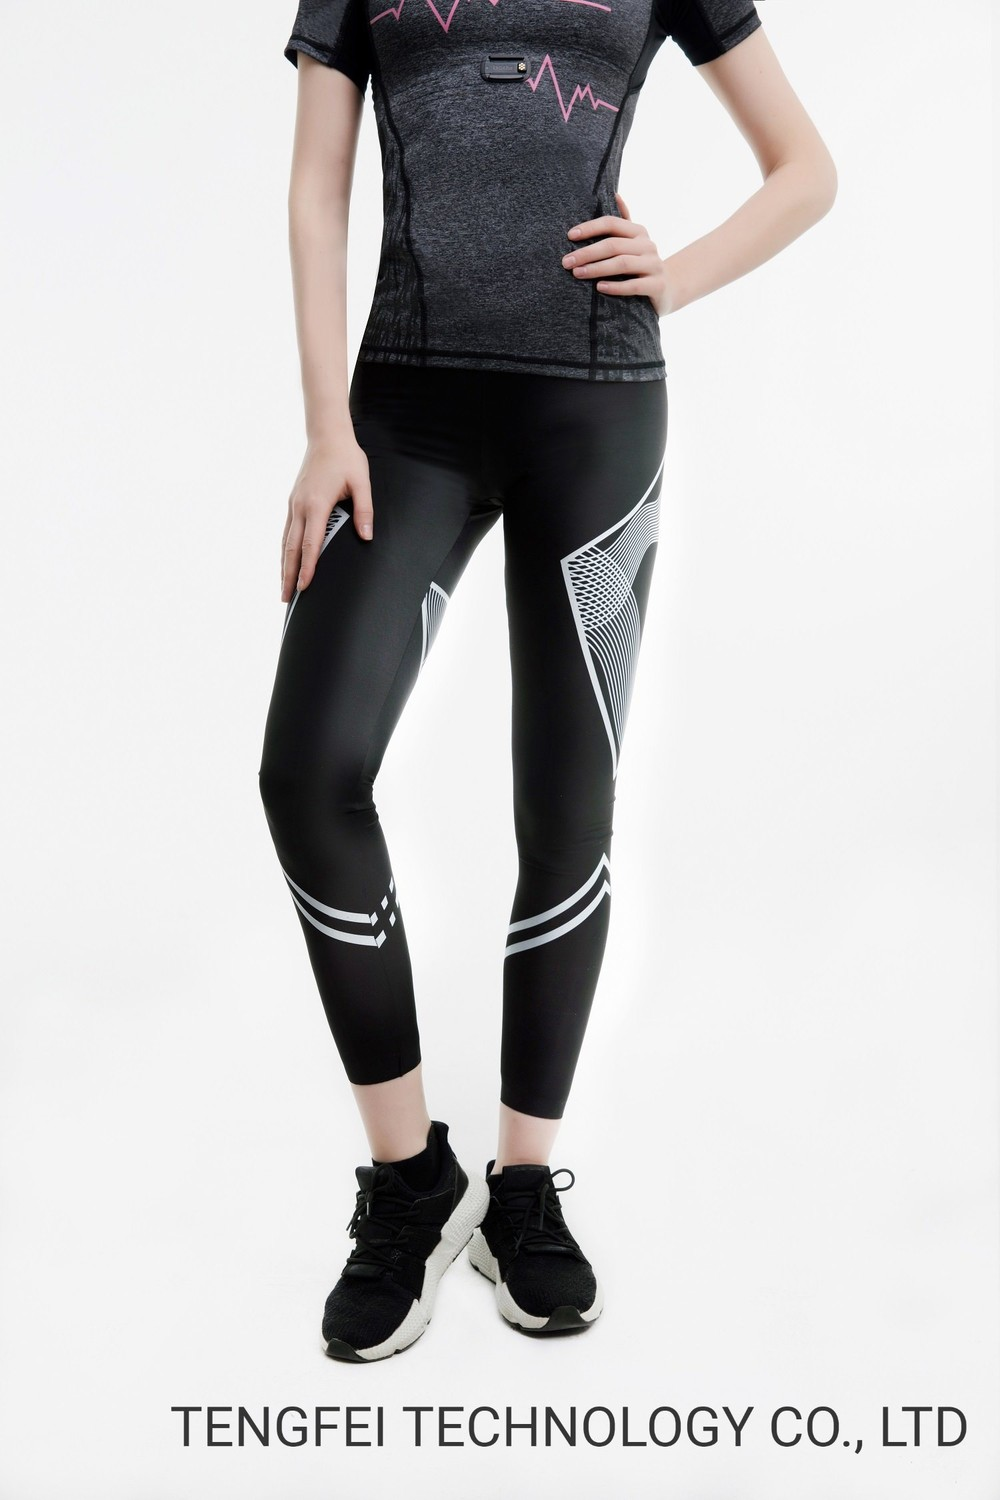 Limax Slimming Leisure and Compressive Sports Yoga Legging